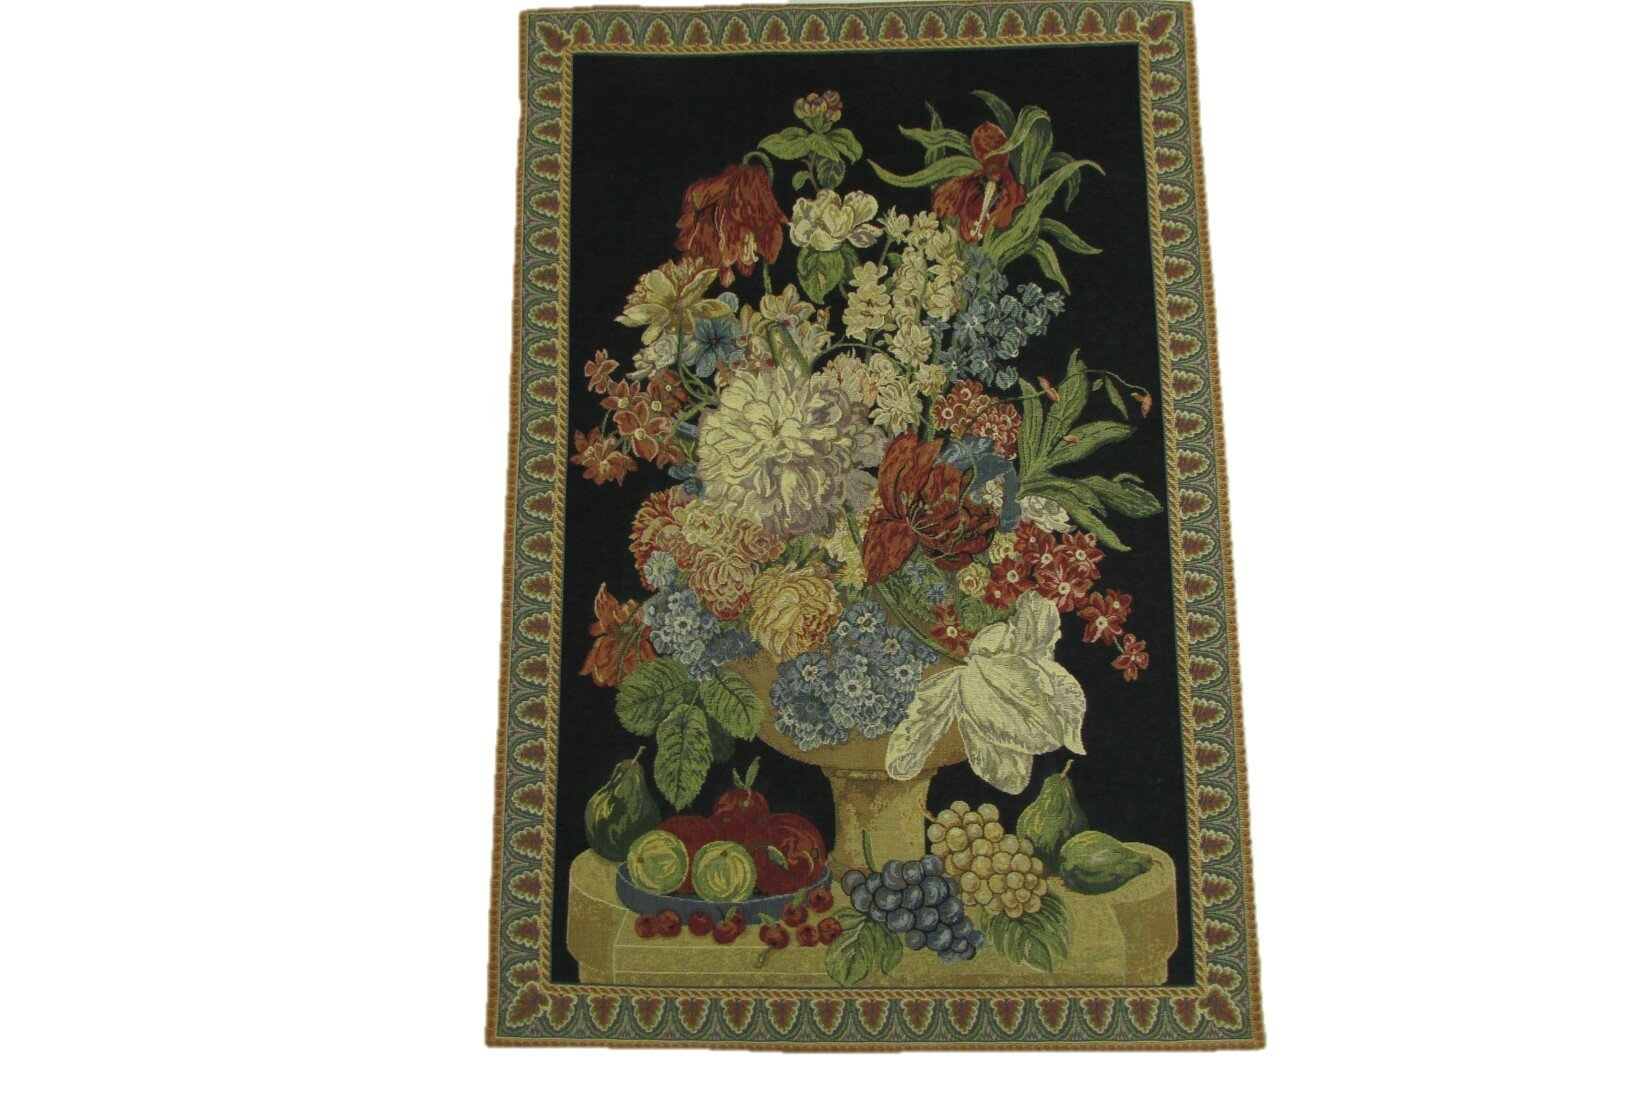 Fruits With Flowers Tapestry Within Most Up To Date Blended Fabric Fruity Bouquets Wall Hangings (View 4 of 20)